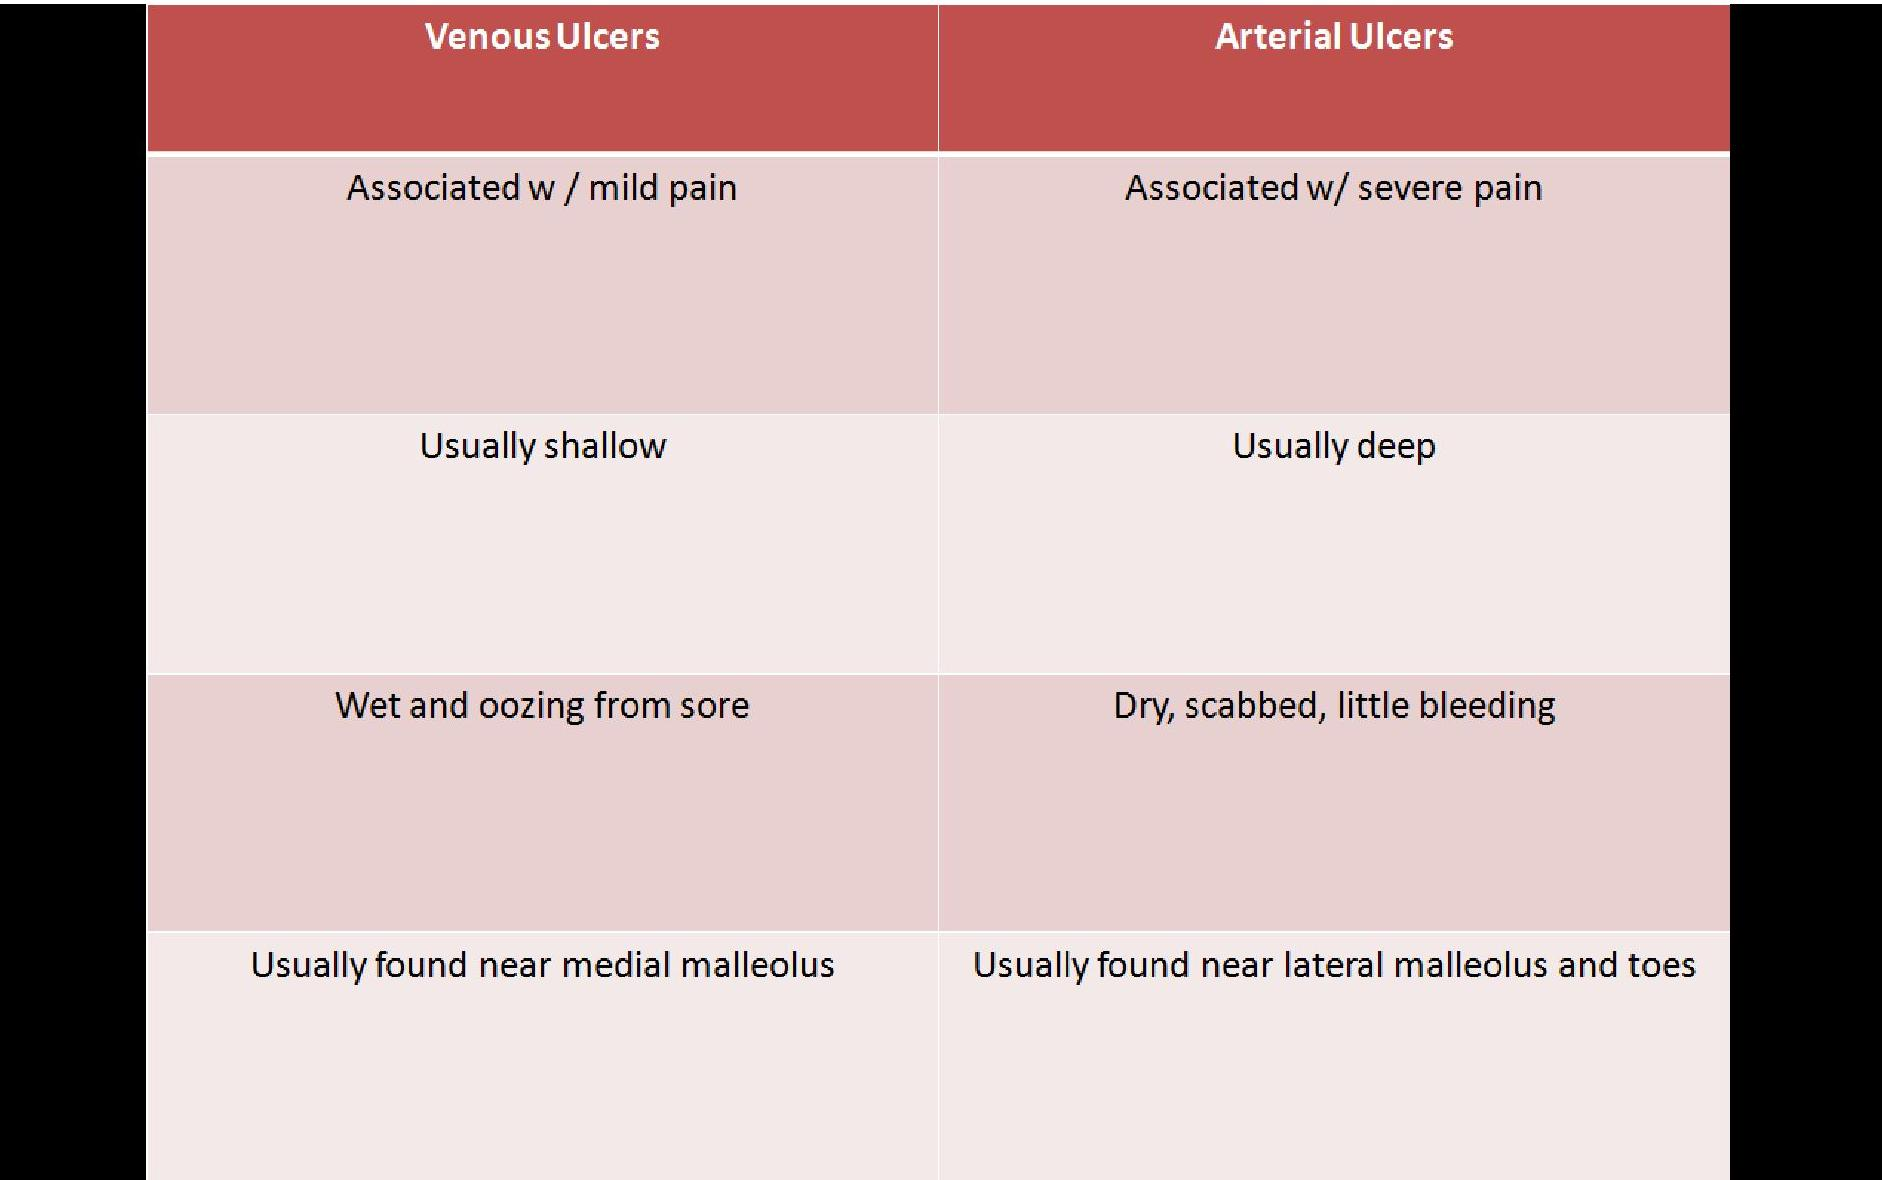 What is the difference between arterial and venous blood?